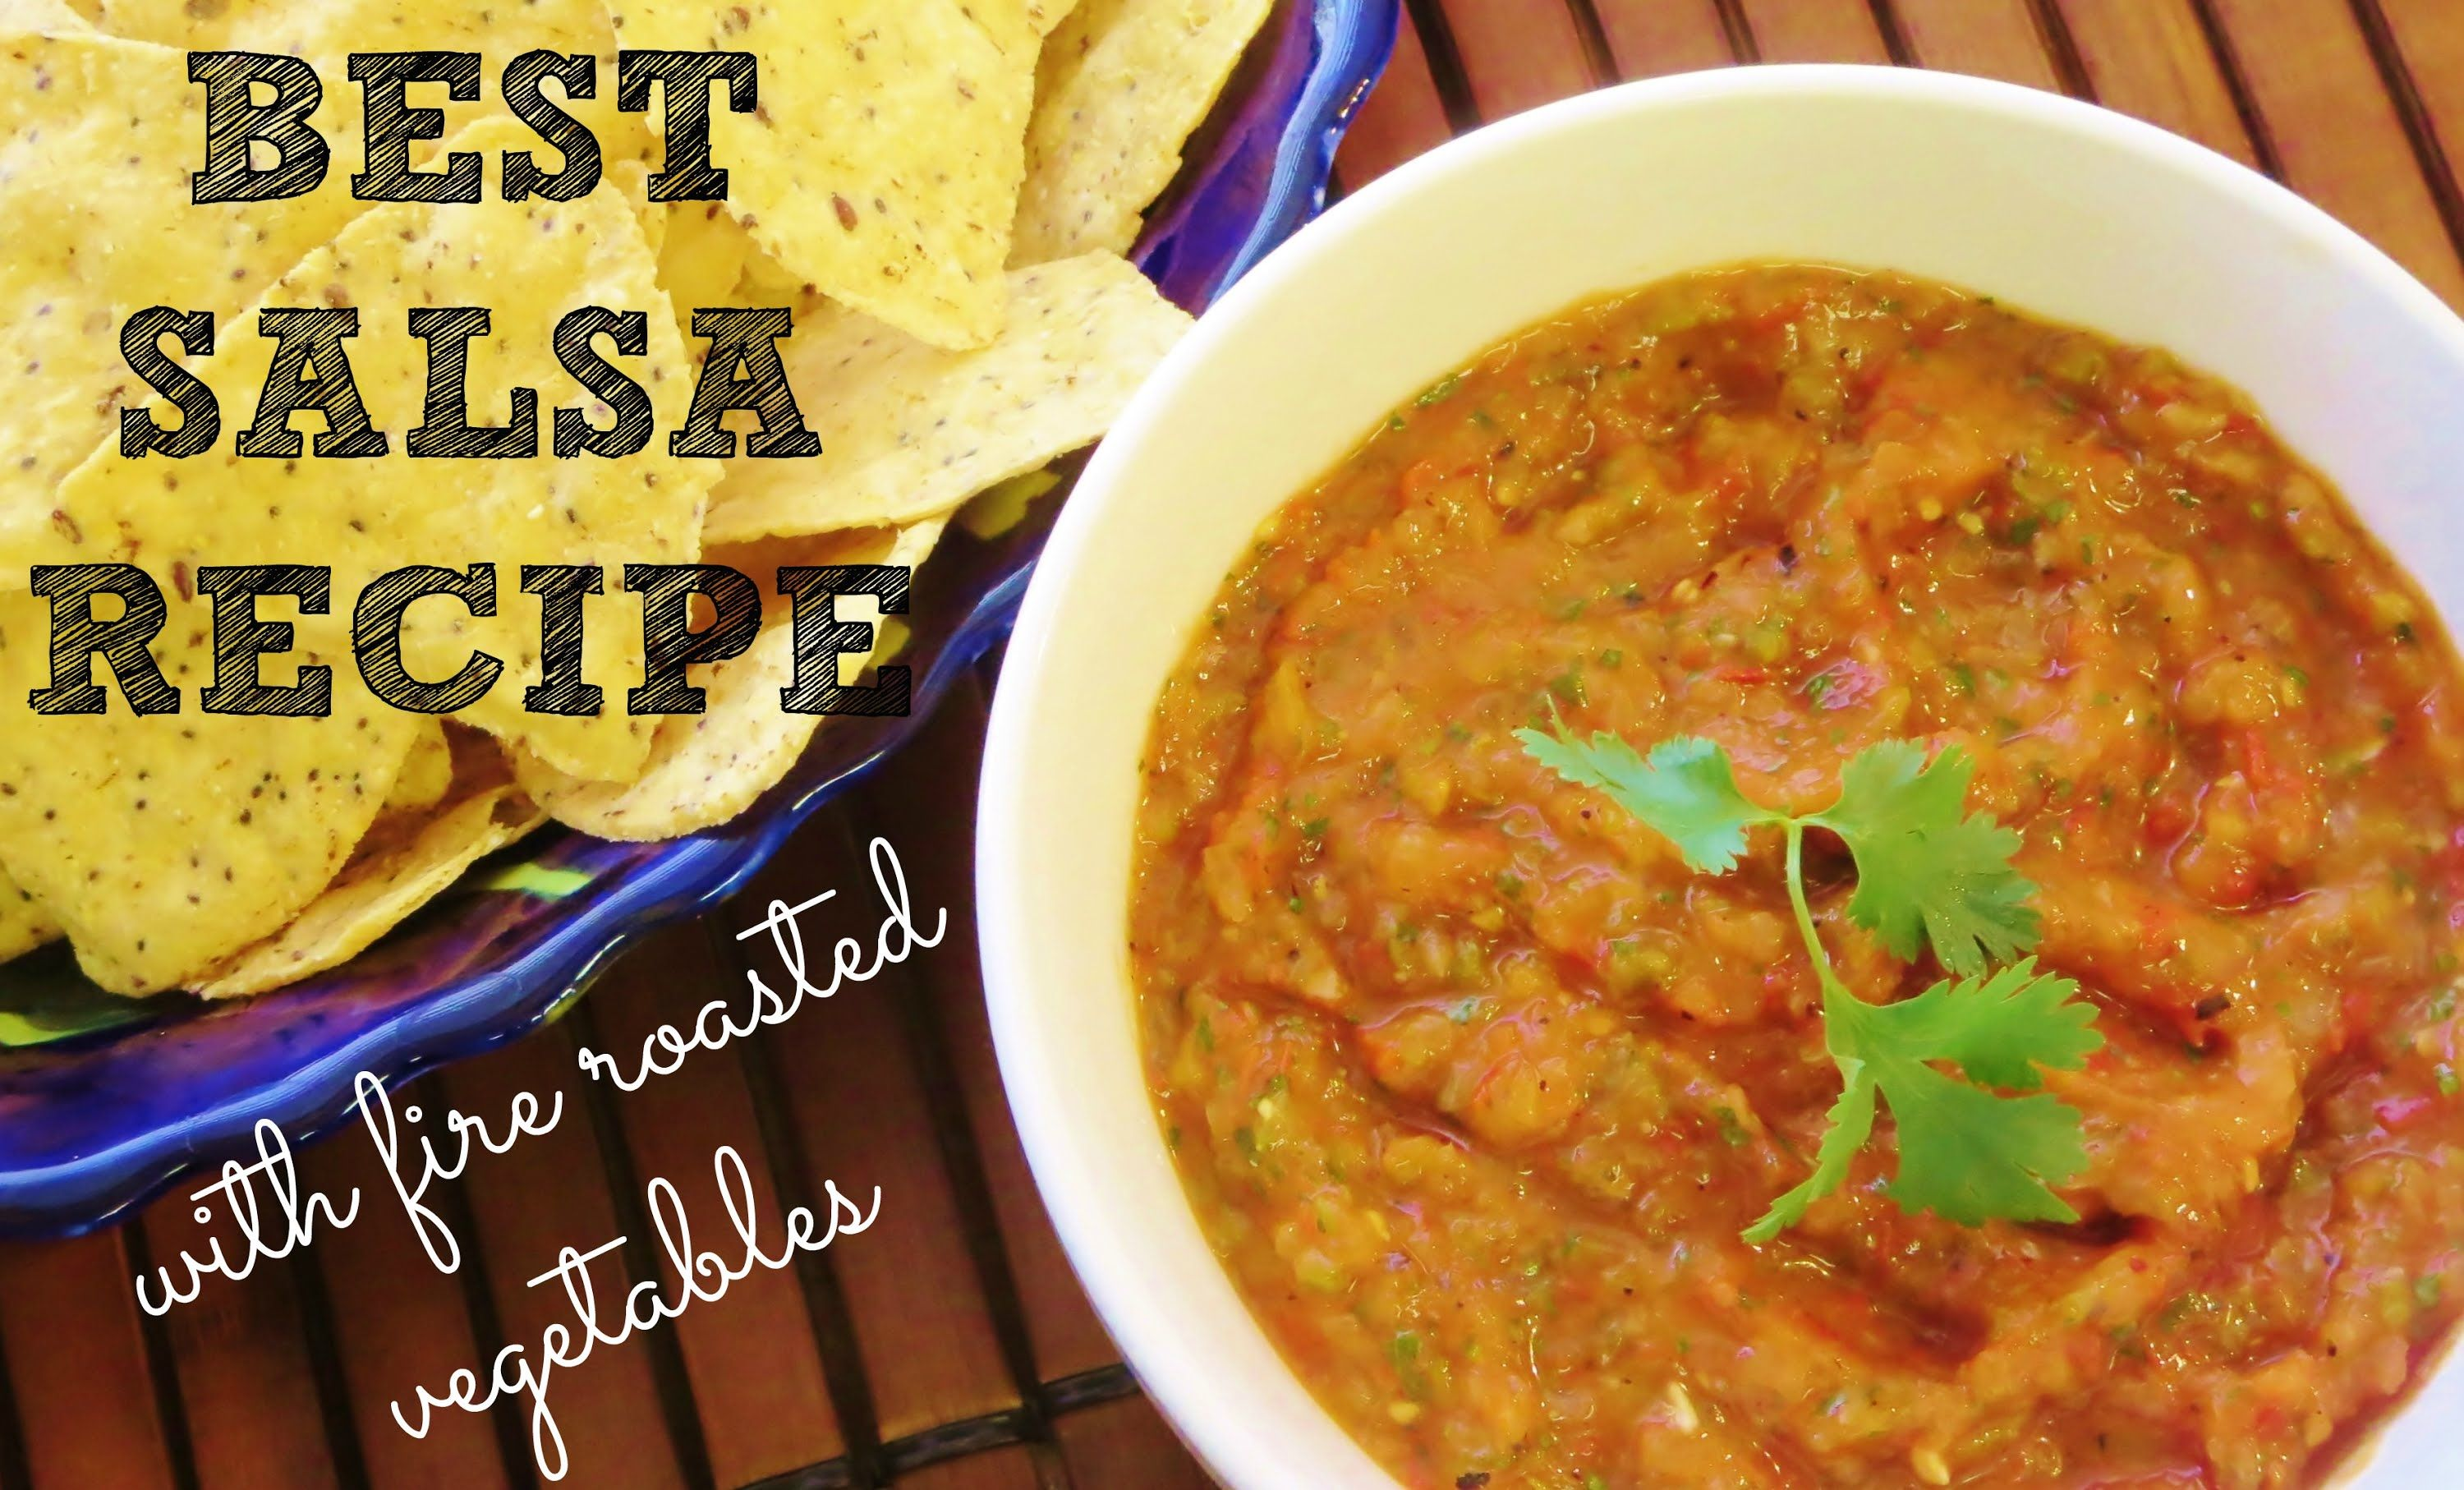 Best salsa recipe fire roasted tomatoes jalapeos onion this is the best mexican salsa recipe you will ever need to know this is exactly how my mom and grandmother make it in mexico forumfinder Choice Image